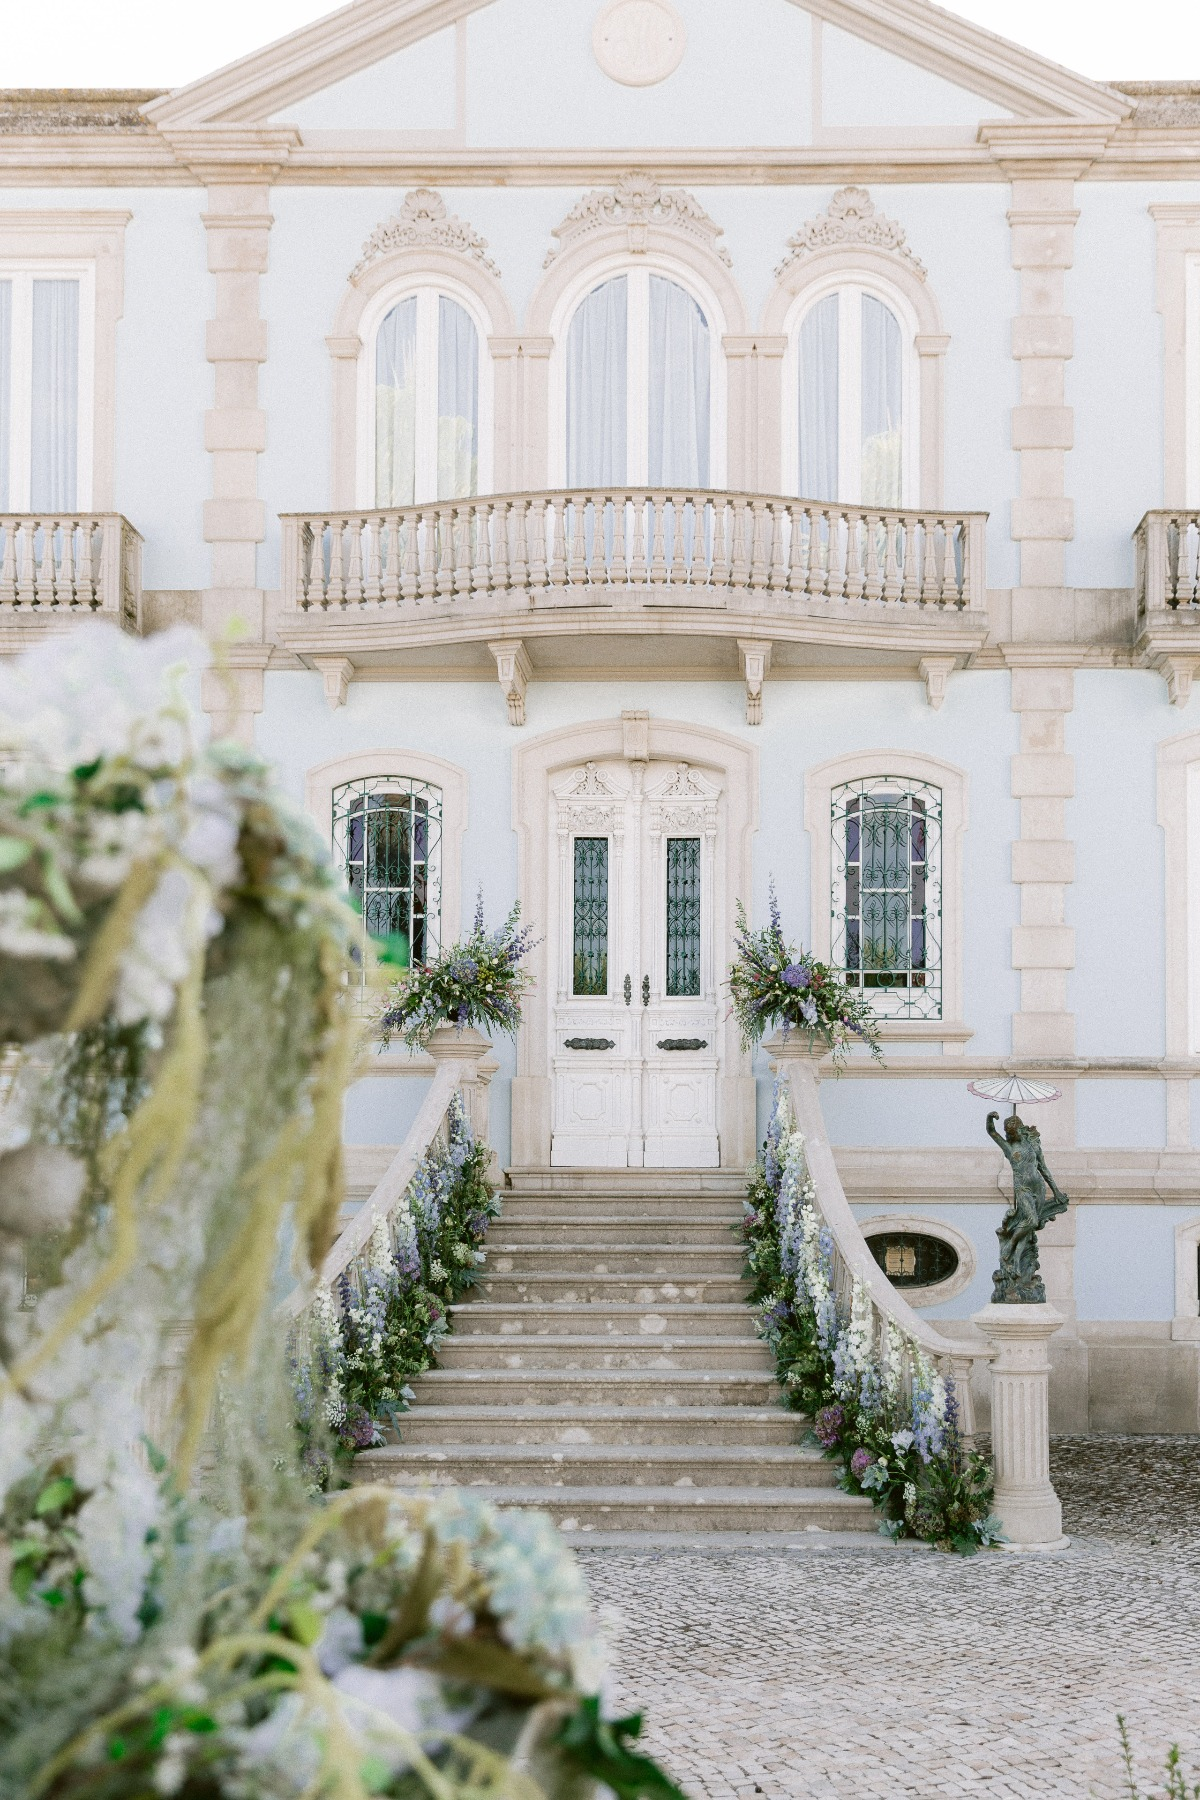 Chateau Wedding Venue in Portugal